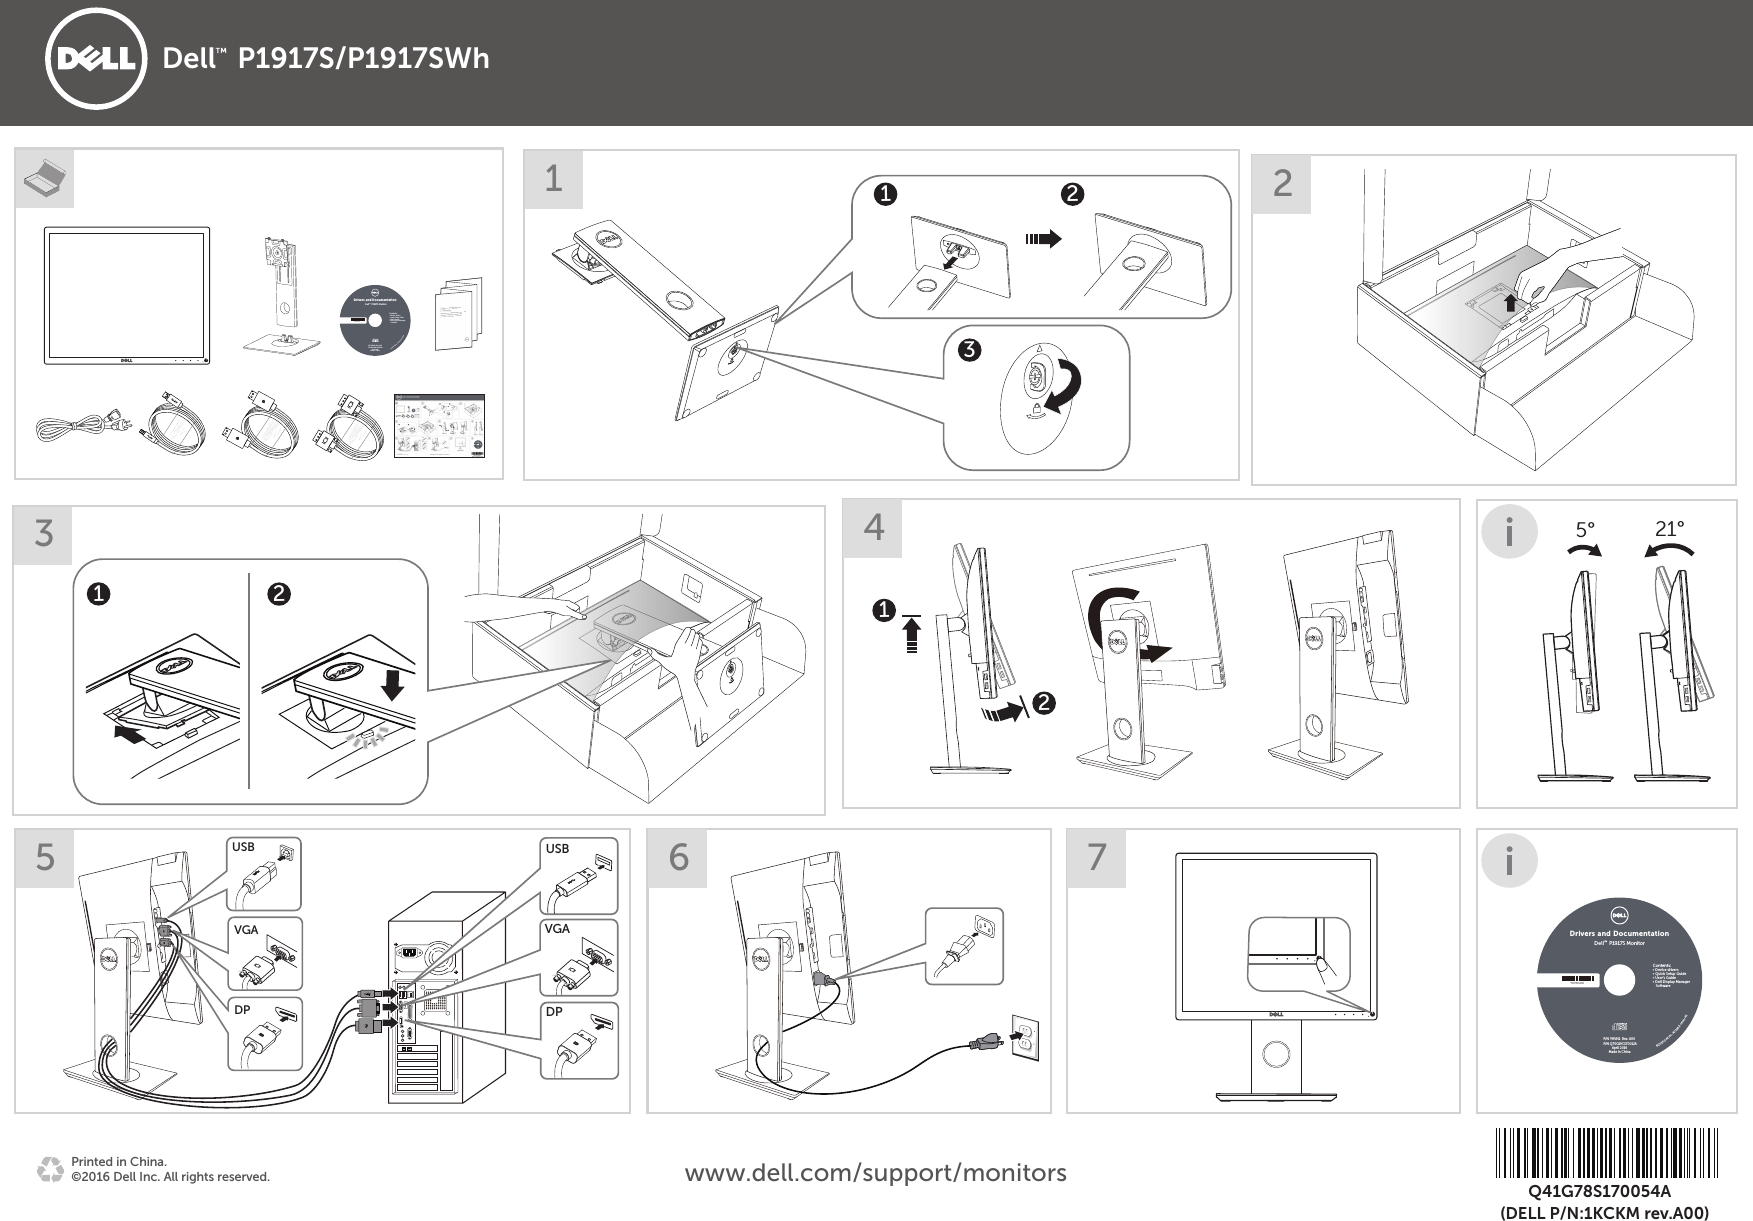 Dell p1917s monitor Quick Setup Guide User Manual En us